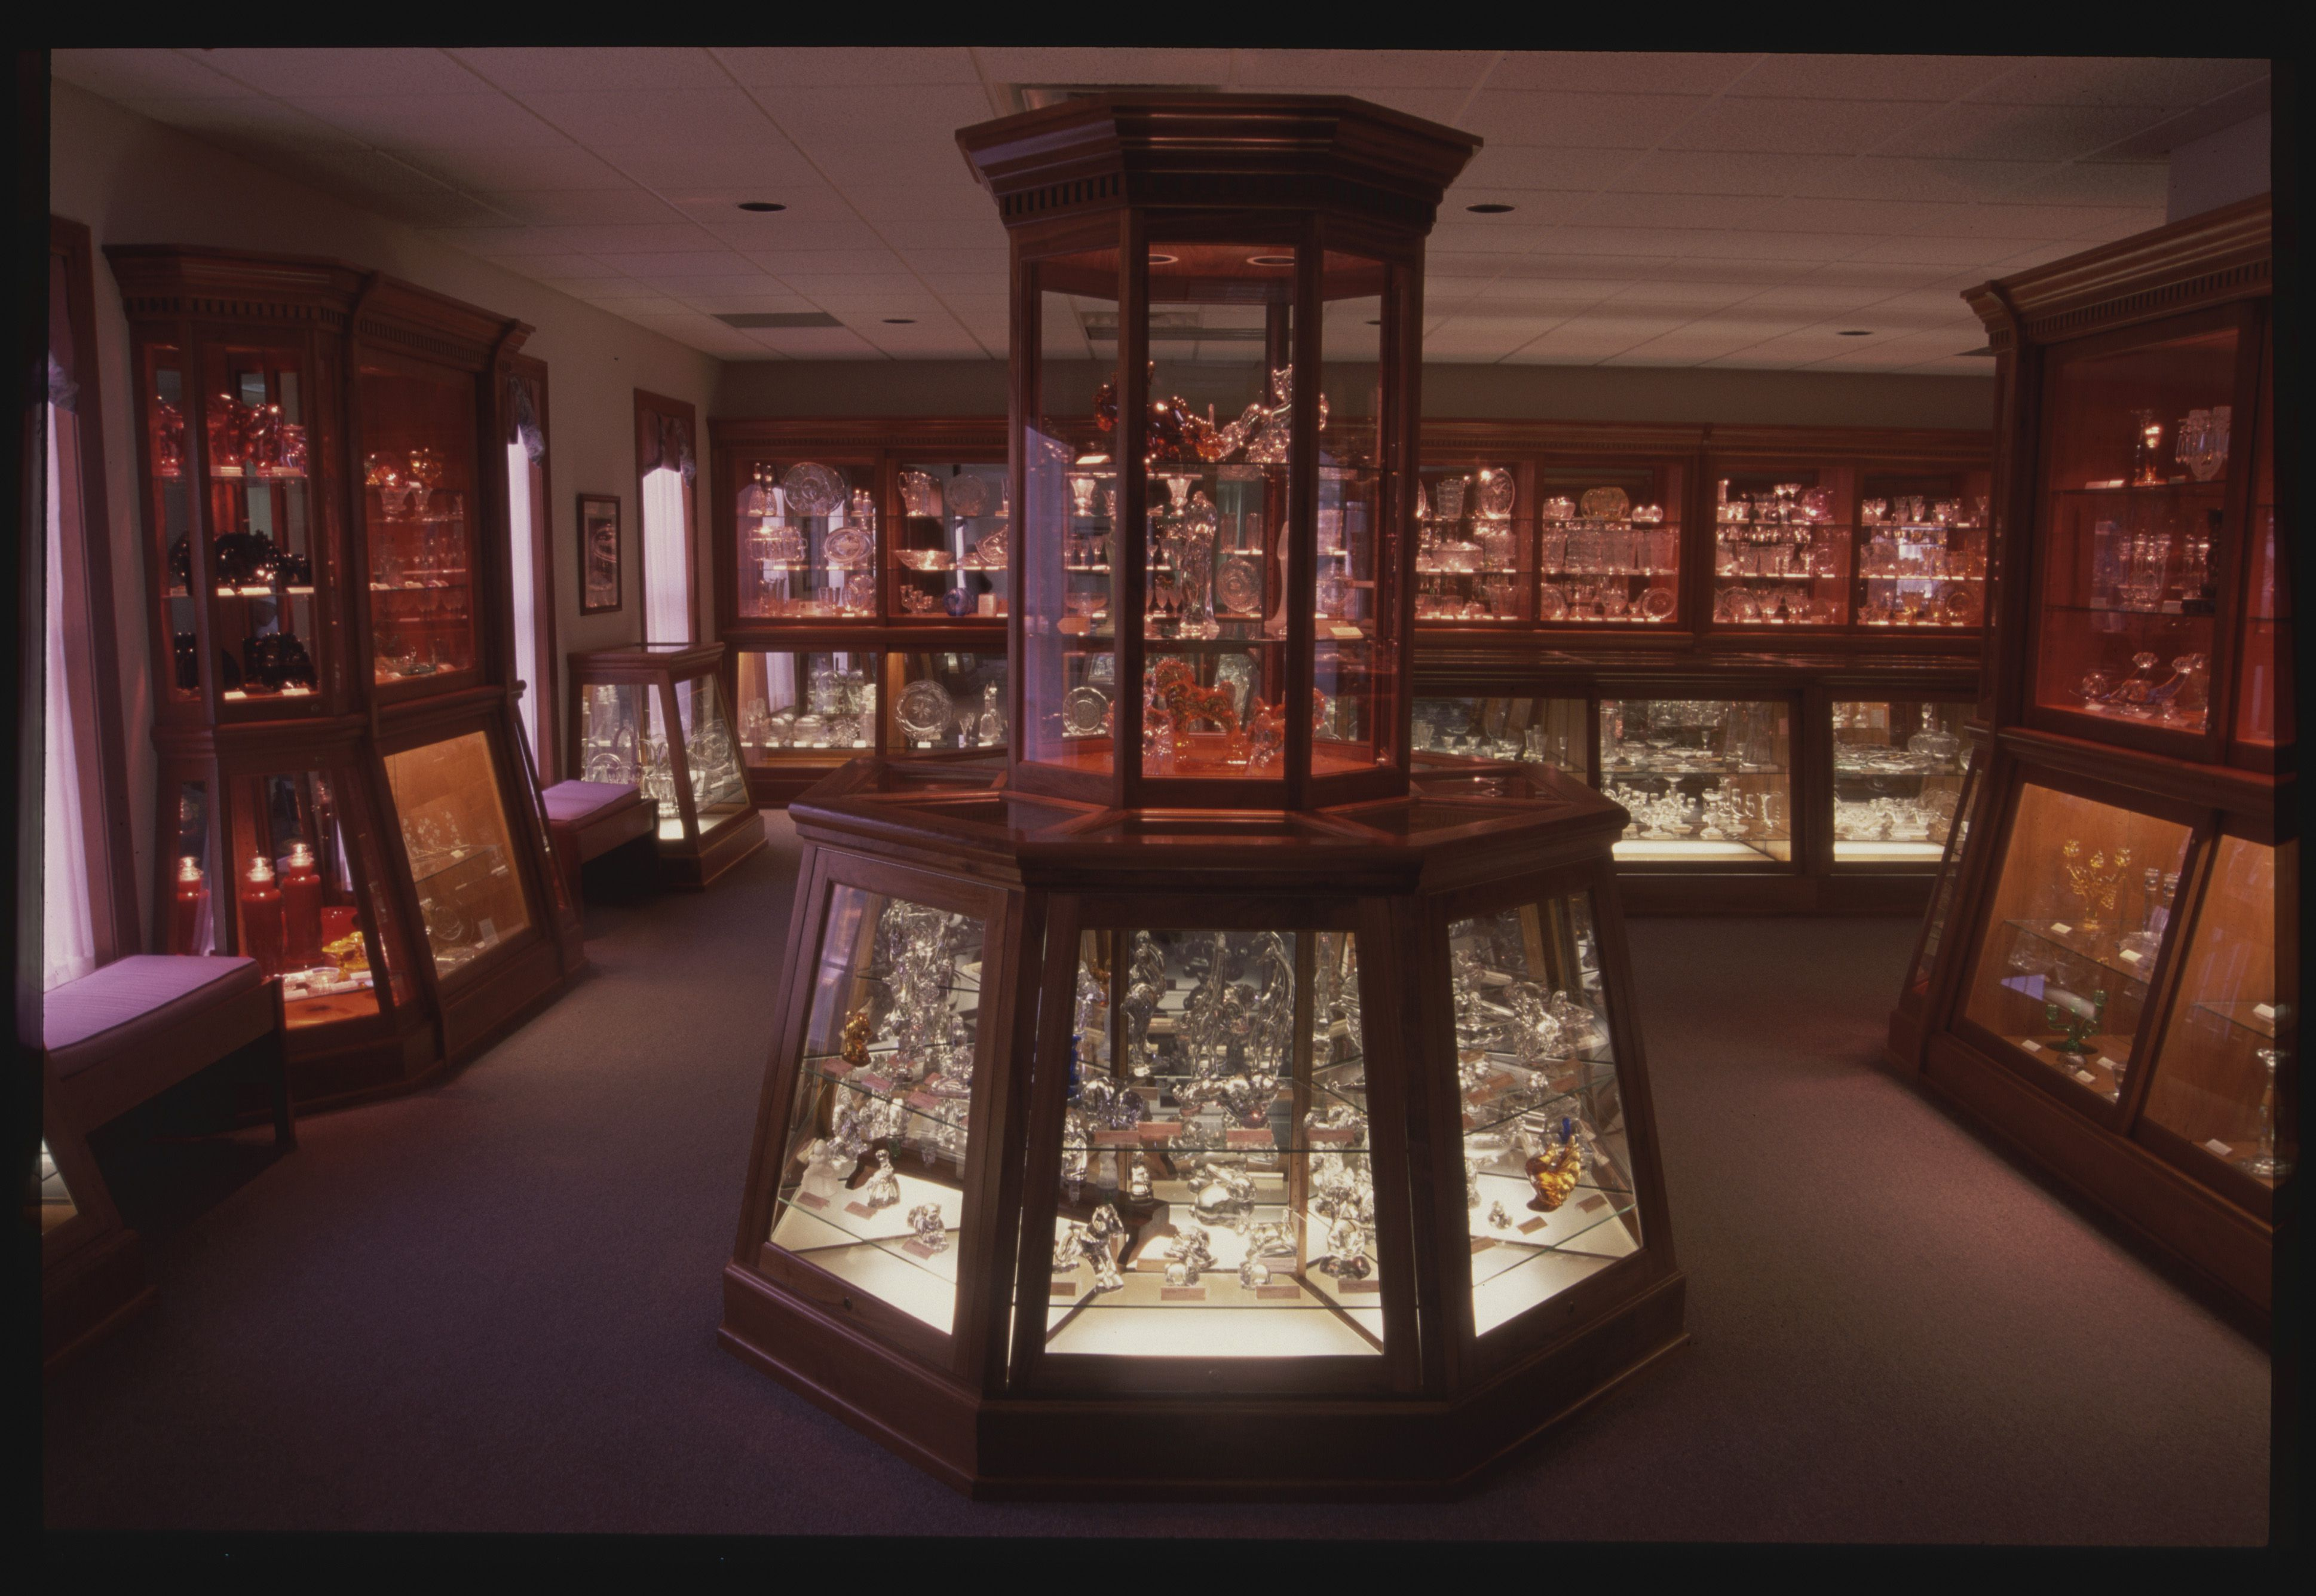 Displays at the National Heisey Glass Museum